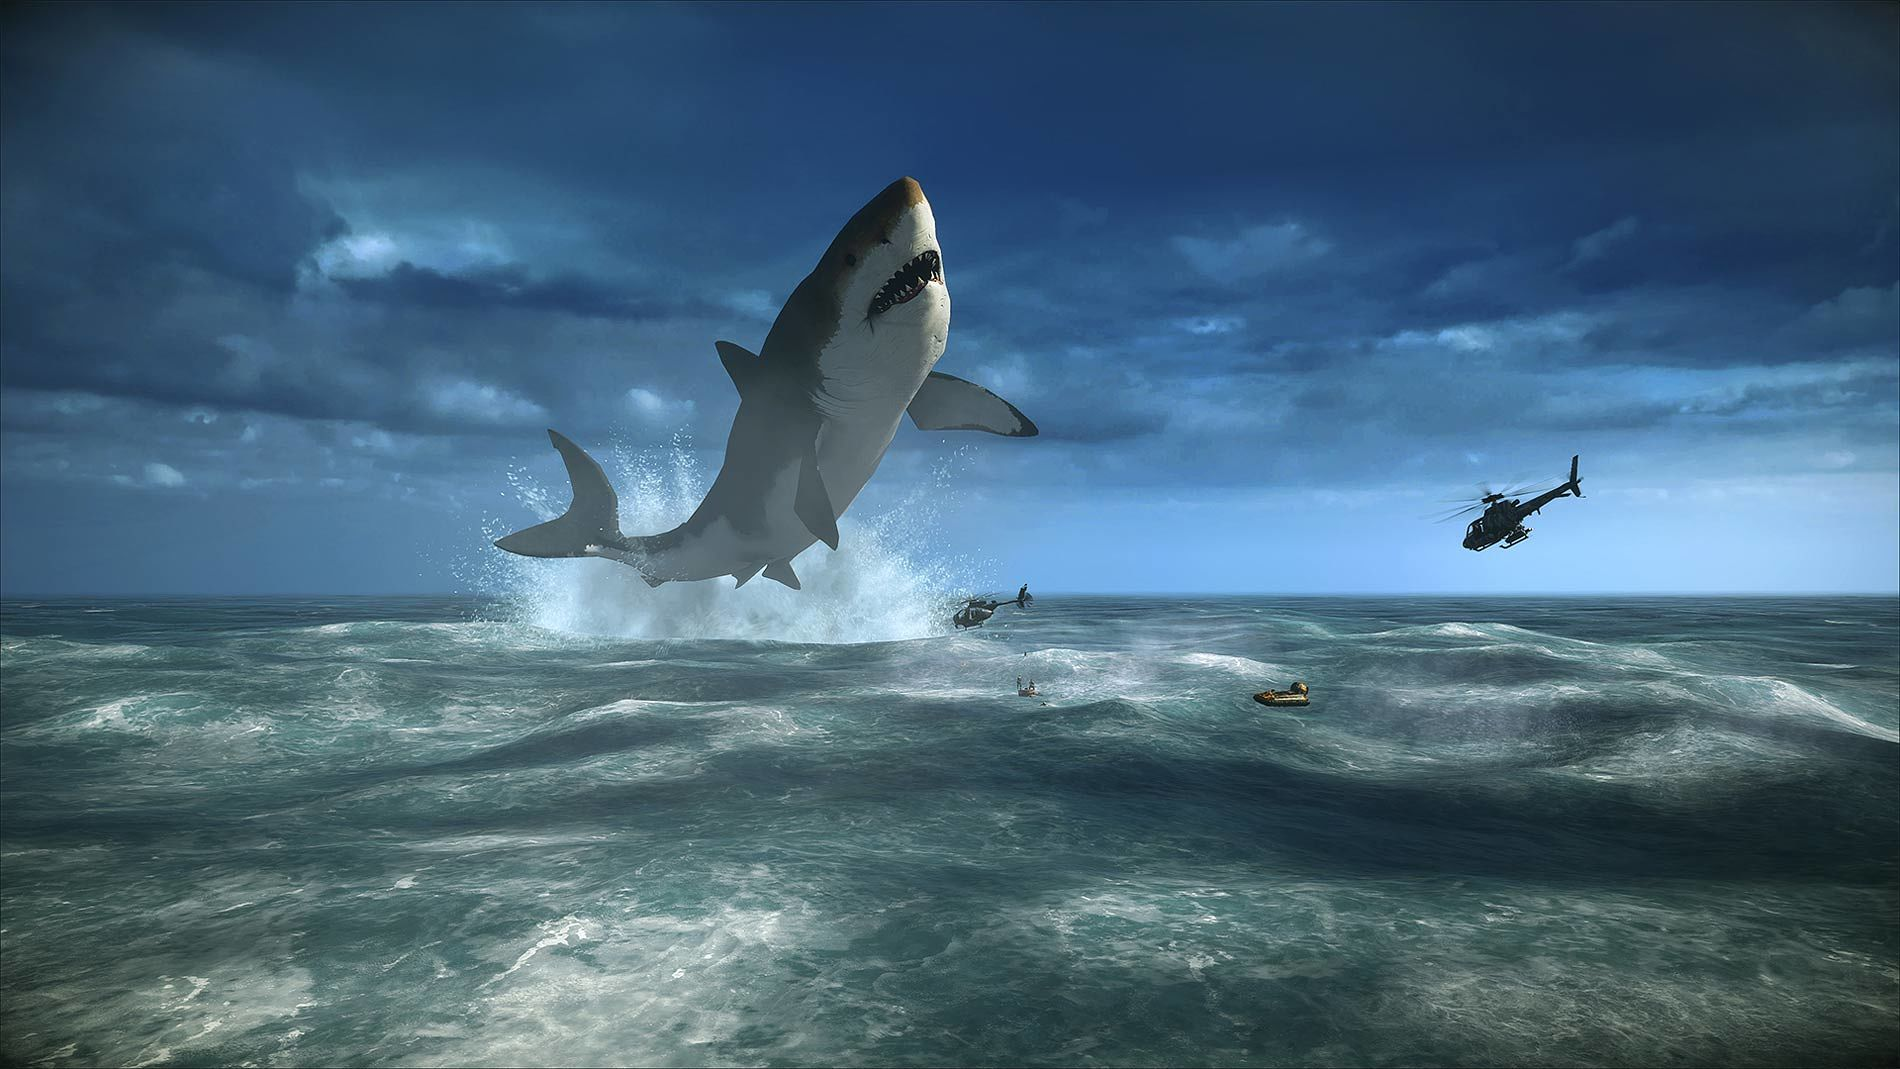 eli-roth-has-left-meg-but-the-70-ft-shark-is-still-planning-to-swim-onto-the-big-screen-878545